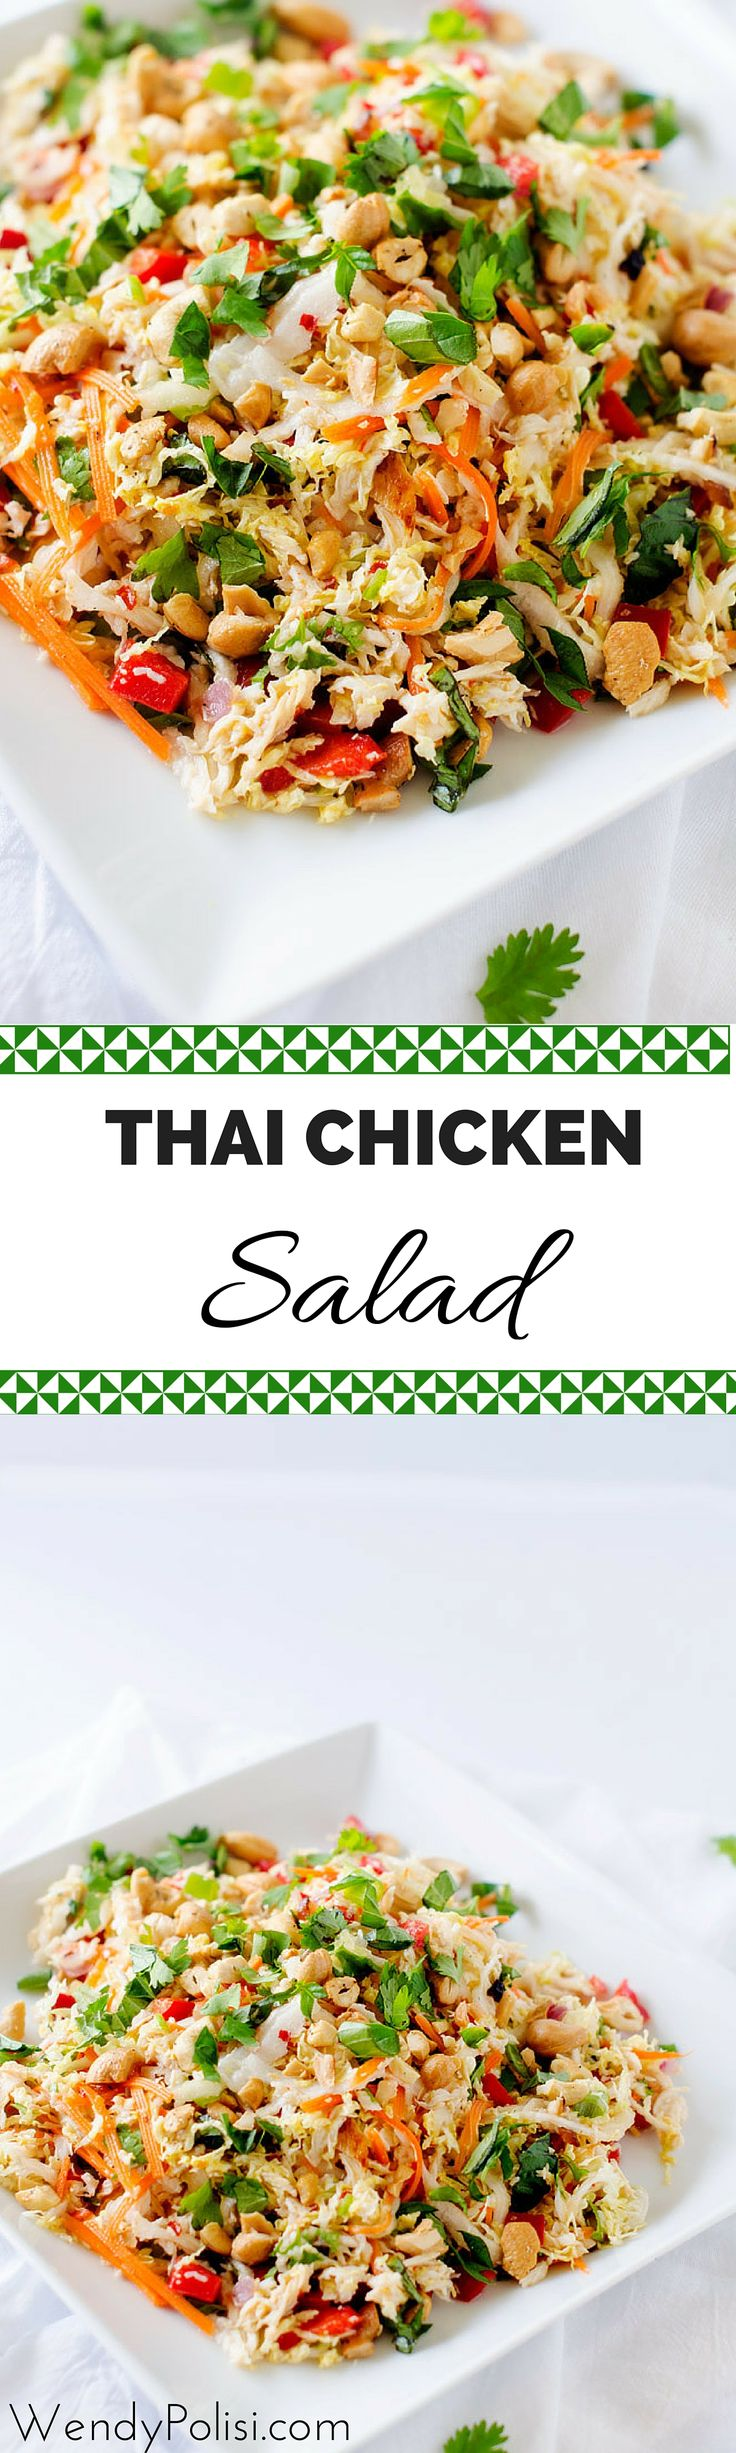 Thai Chicken Salad - WendyPolisi.com